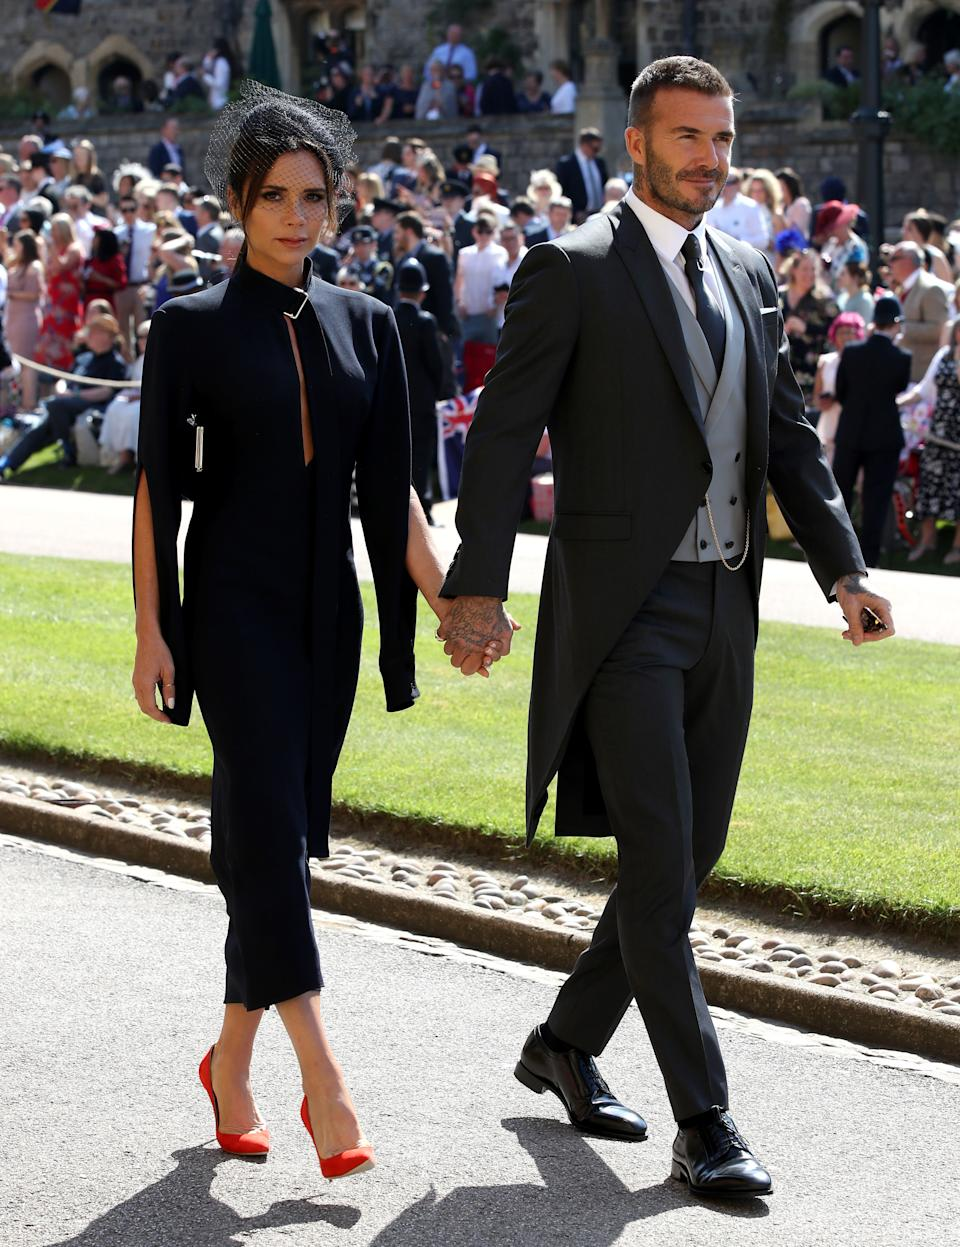 David and Victoria Beckham famously bagged an invite to the Duke and Duchess of Sussex's nuptials [Photo: Getty]